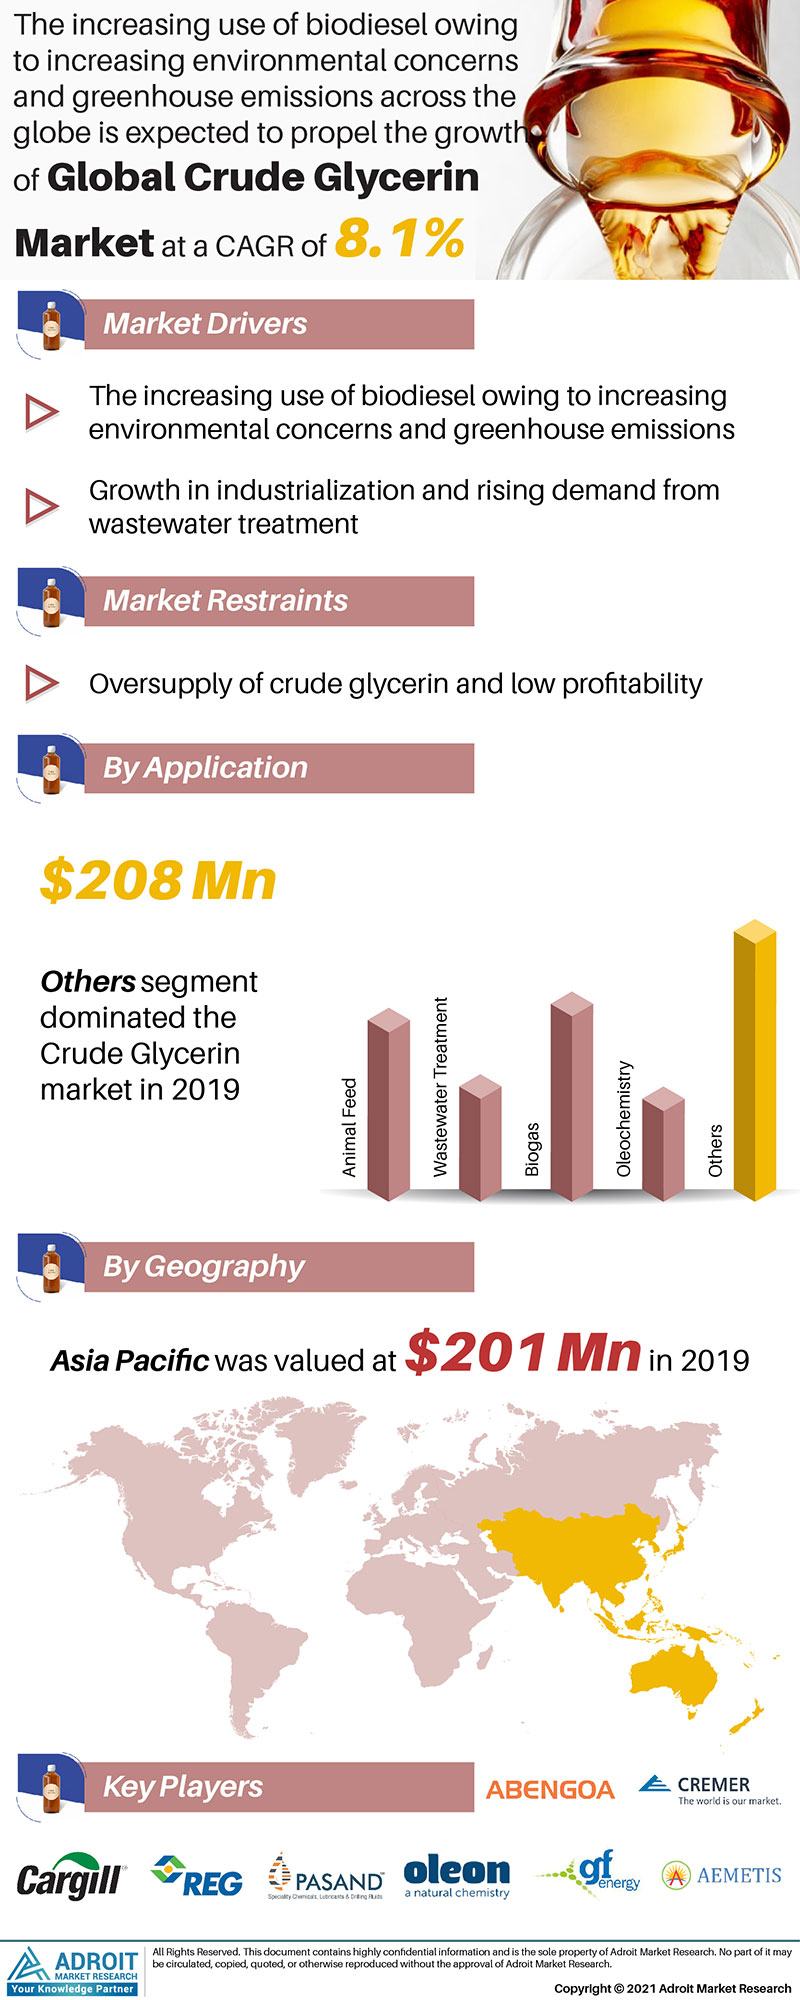 Crude Glycerin Market Trends and Forecasts Research Report